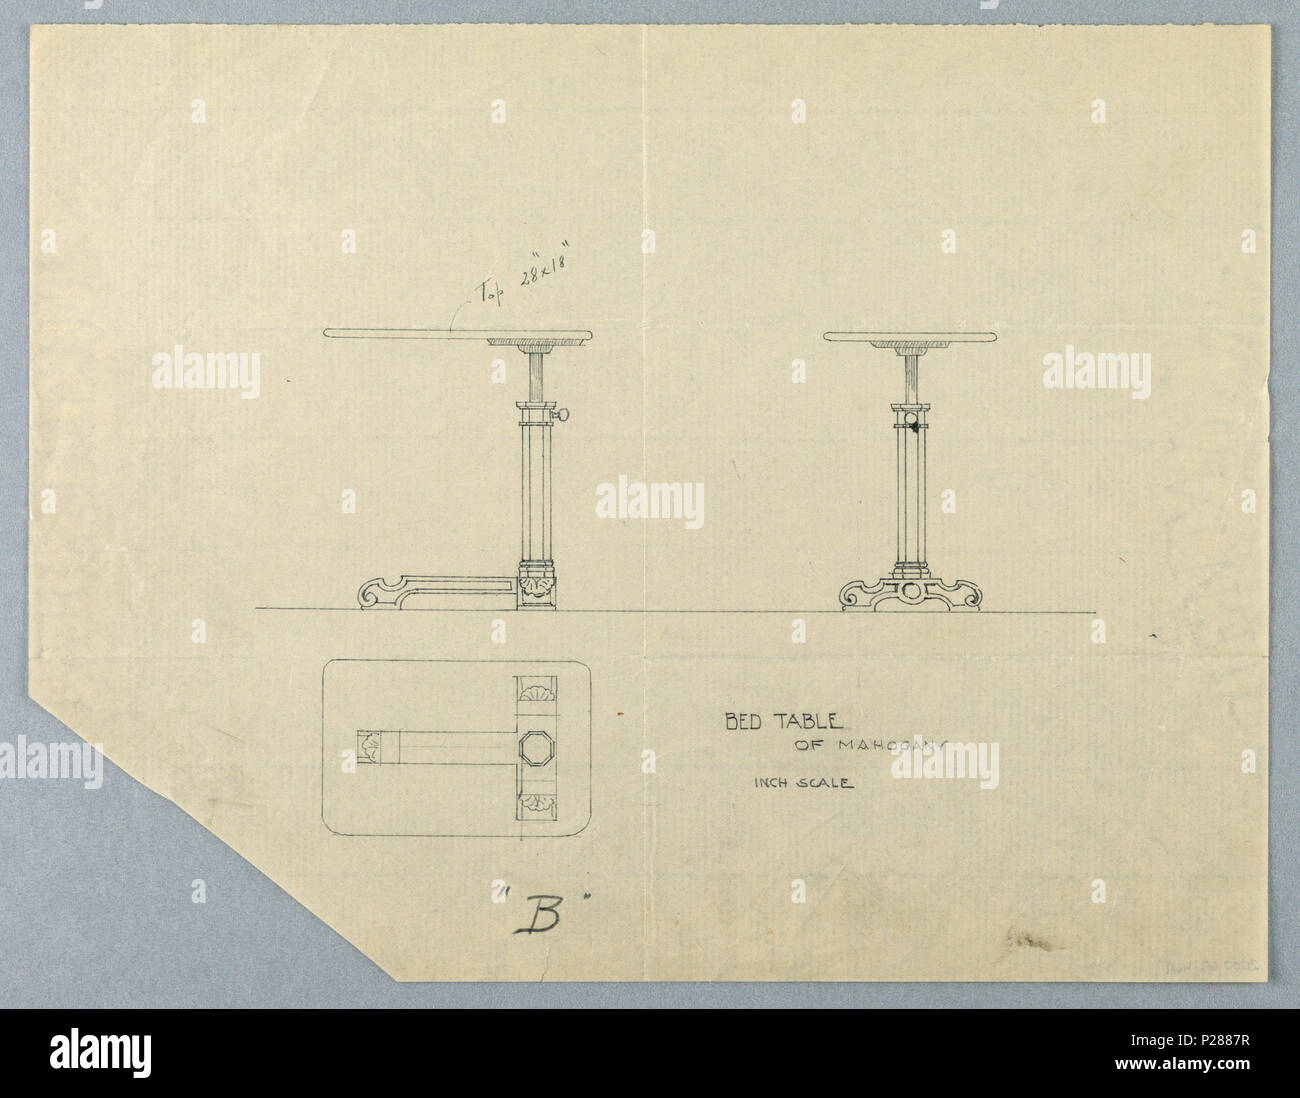 103 Drawing Design For Small Bed Table B Of Mahogany In Three